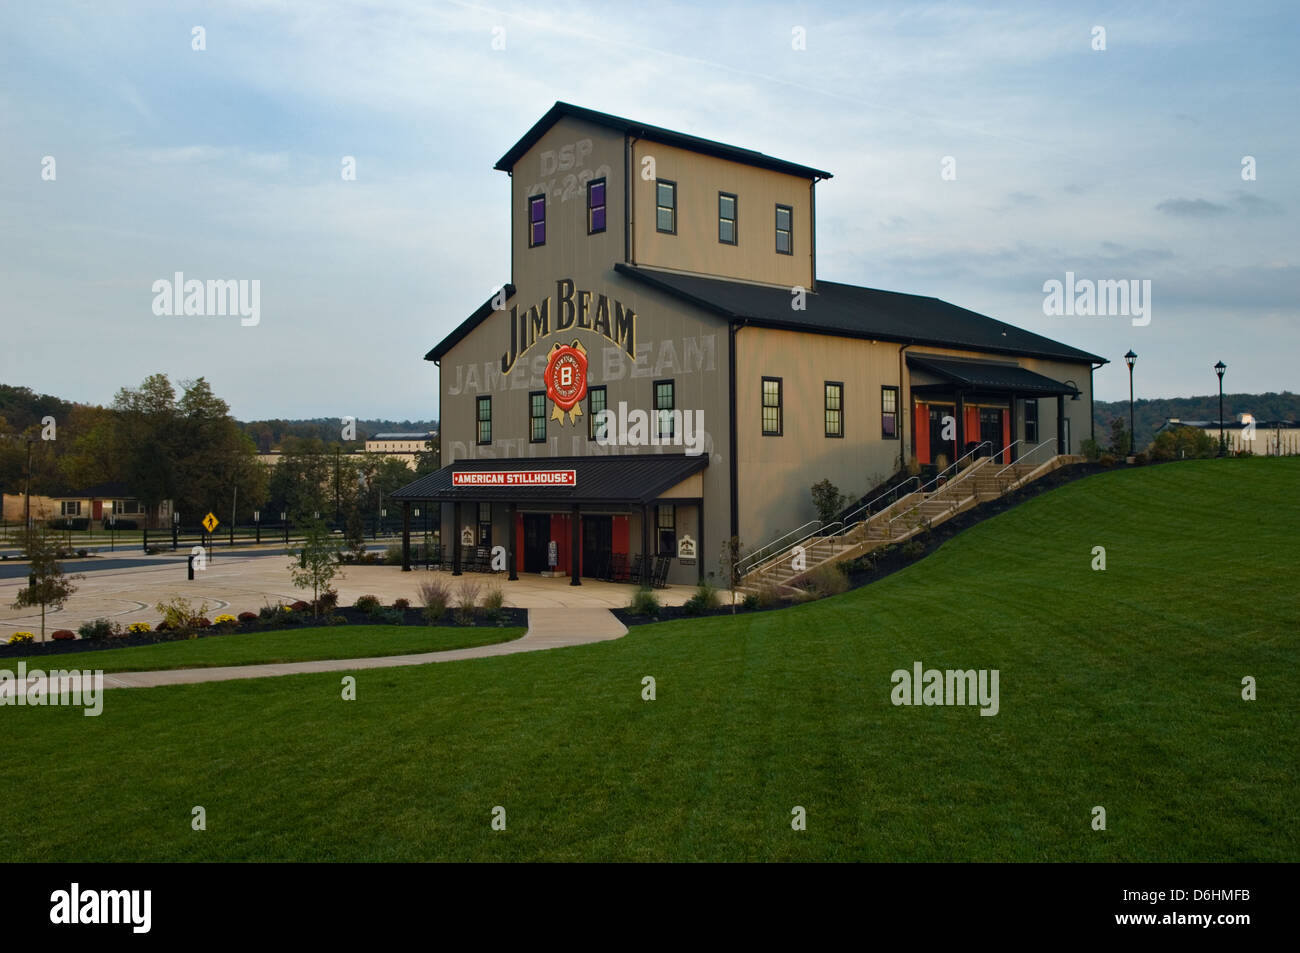 The American Stillhouse at Jim Beam Distillery in Clermont, Kentucky - Stock Image